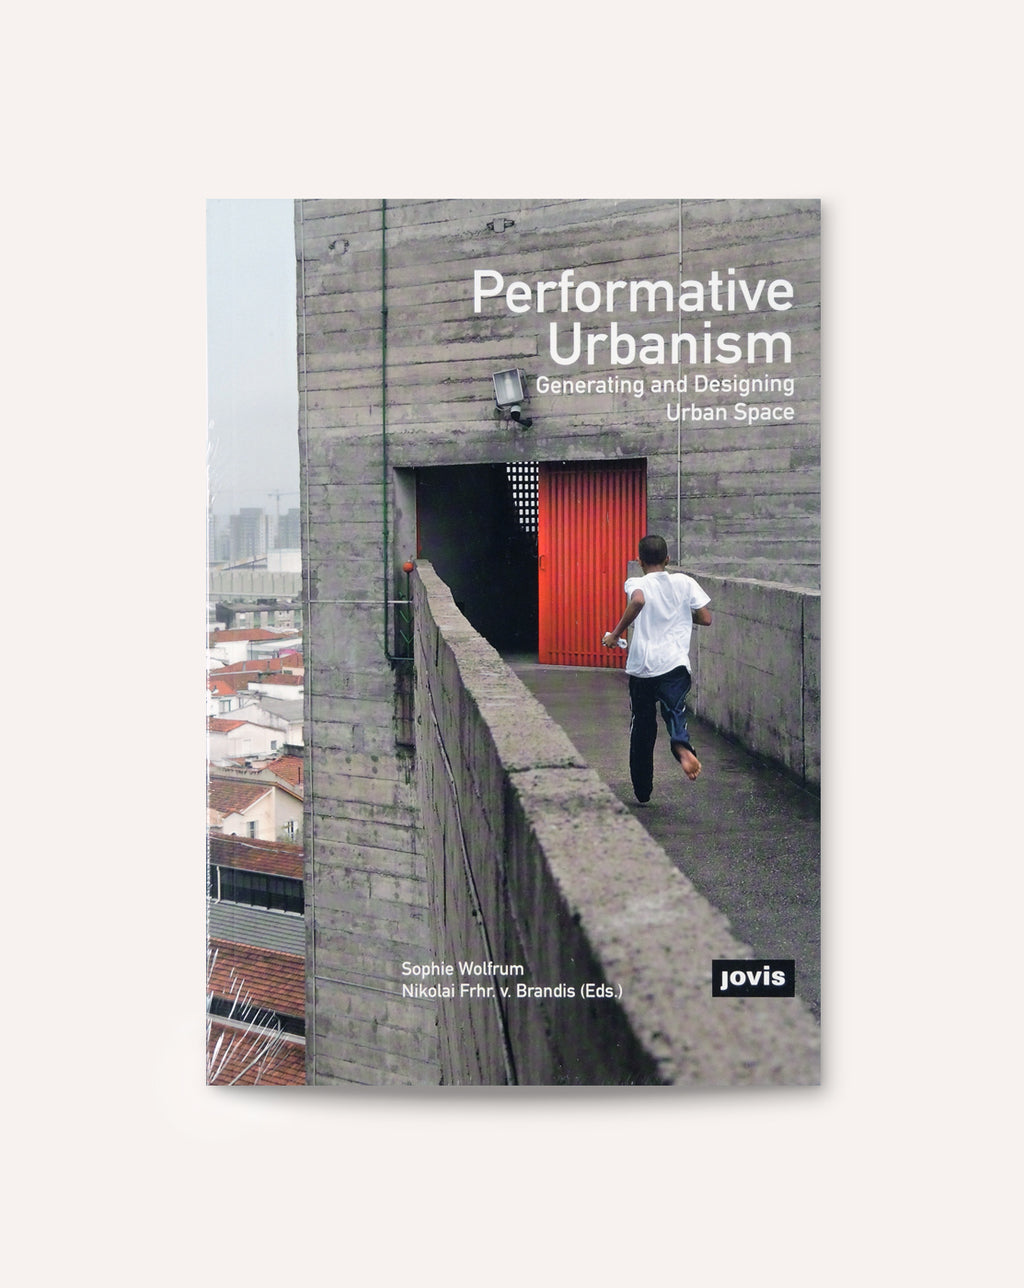 Performative Urbanism: Generating and Designing Urban Space